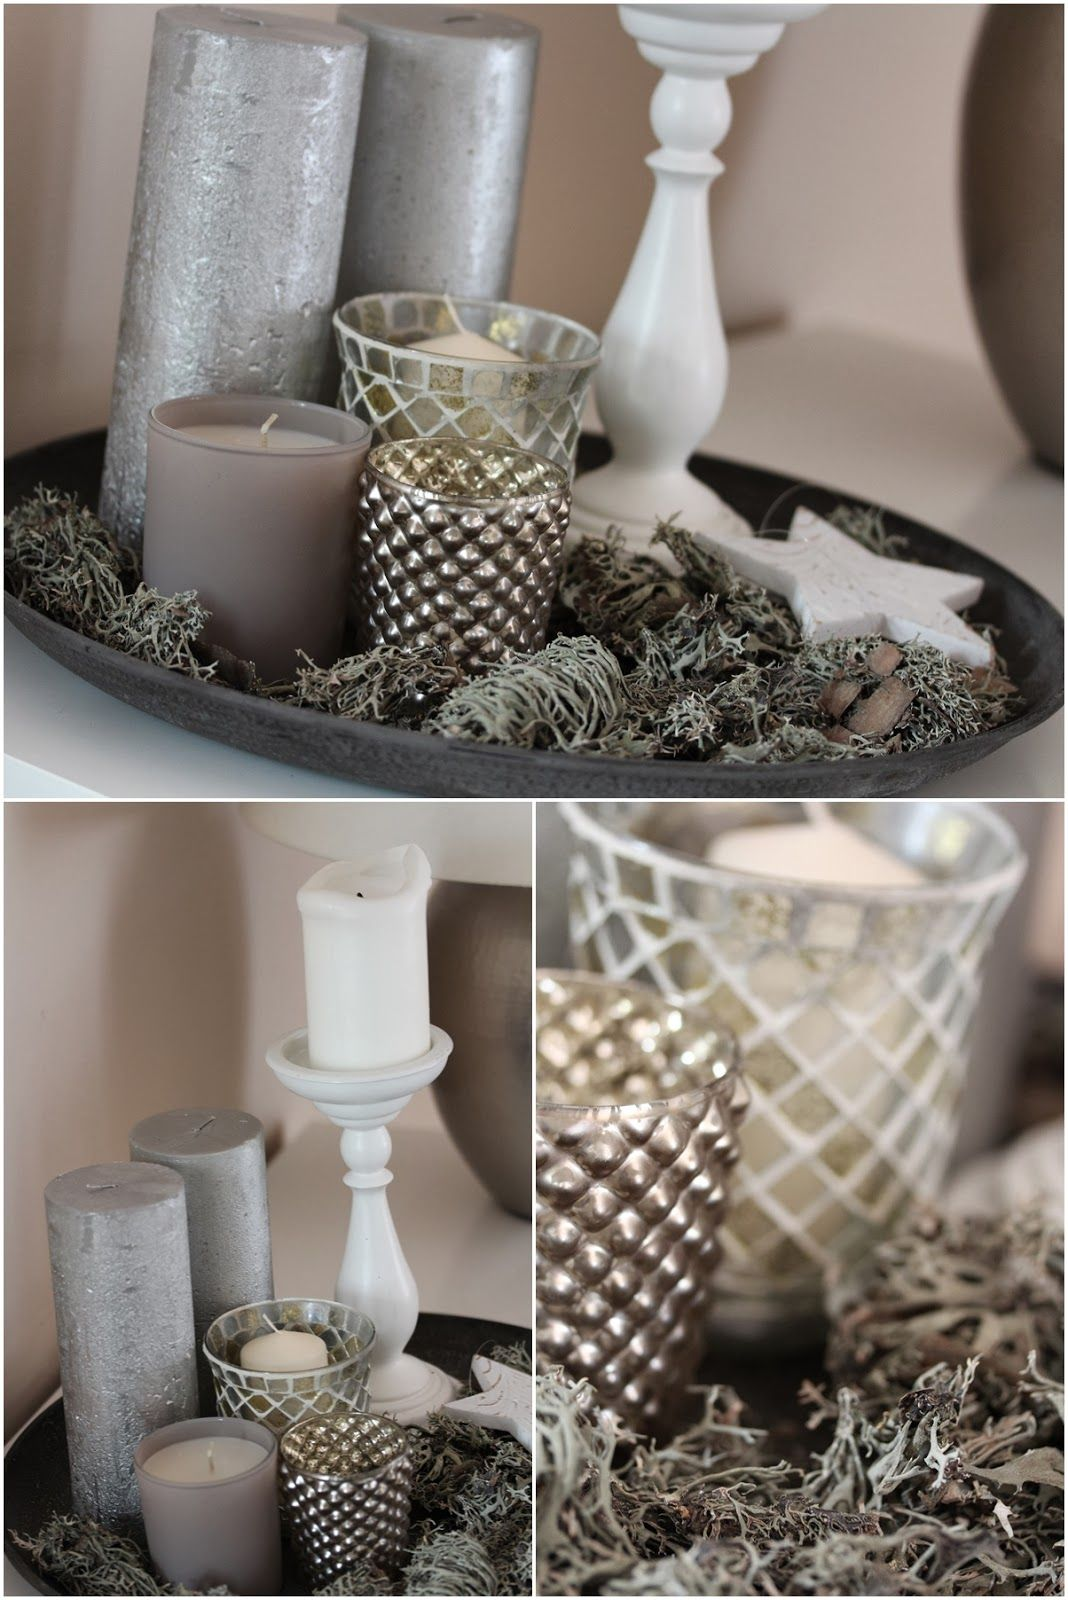 After christmas dekoration kerzen candle white silver diy candles decoration julepynt - Dekoration kerzen ...